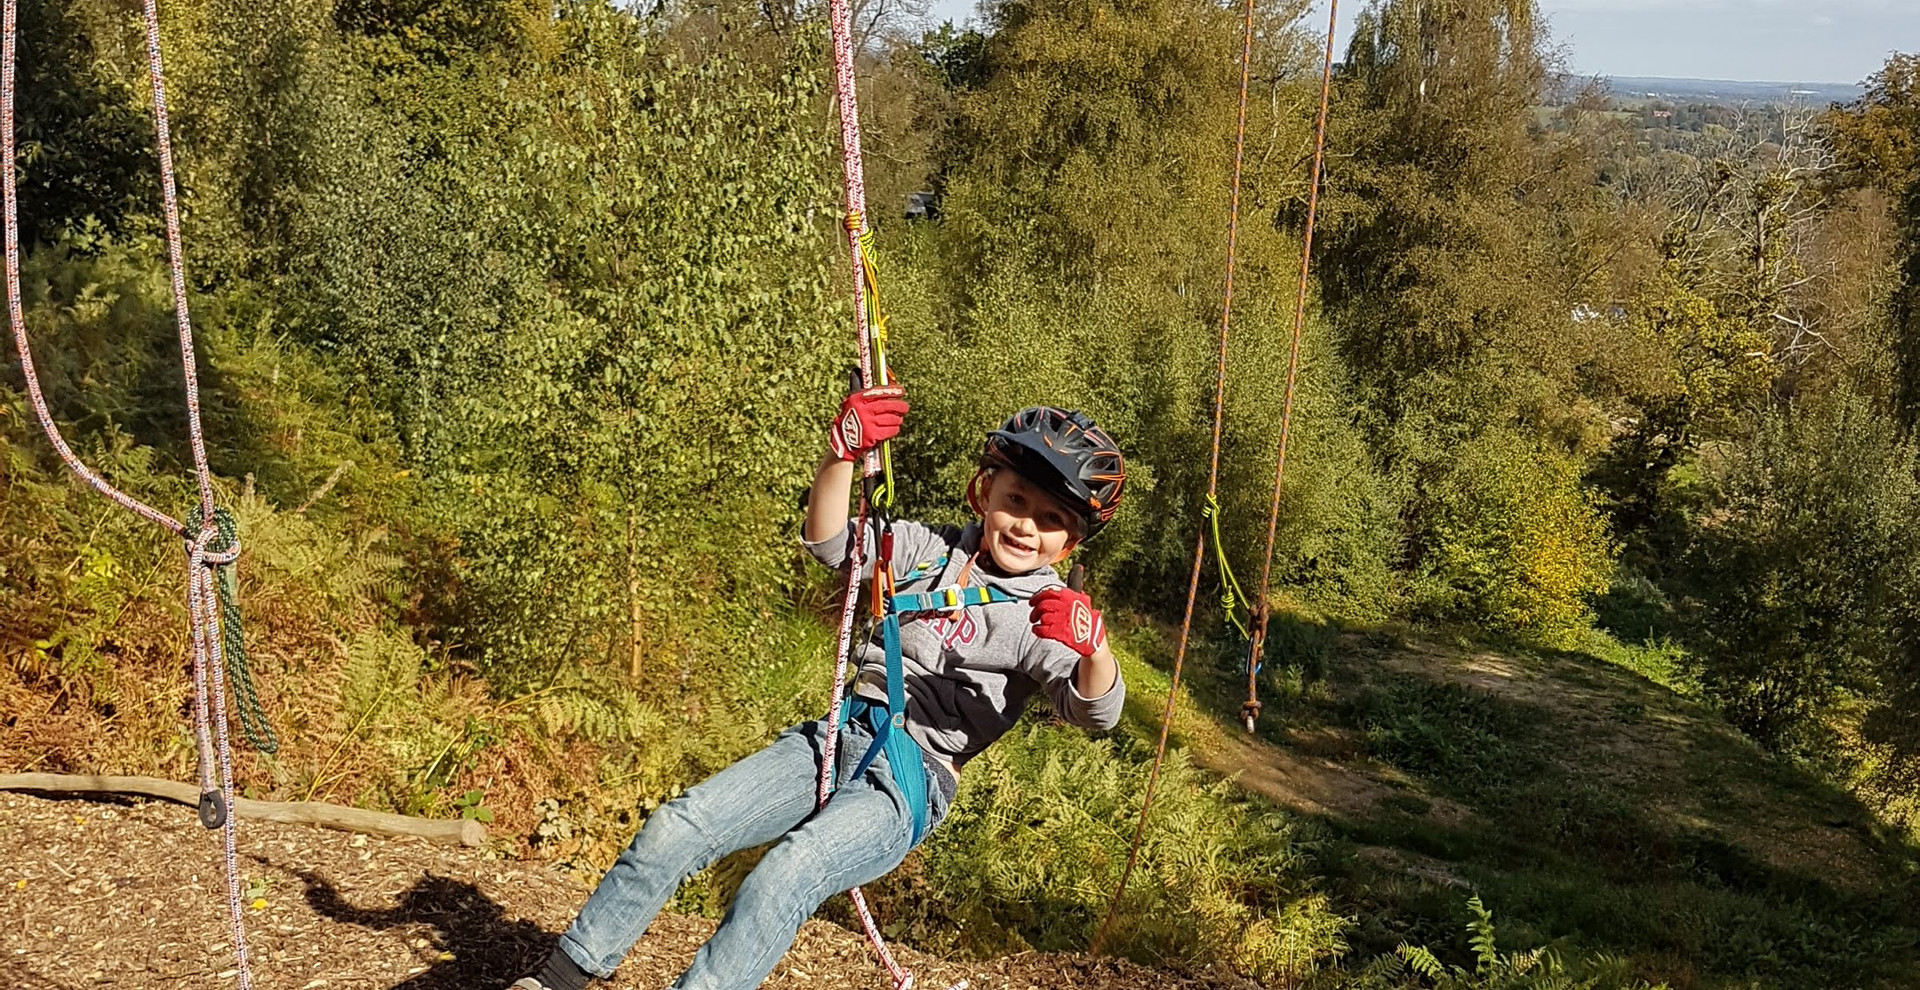 Canopy - Child swinging in harness